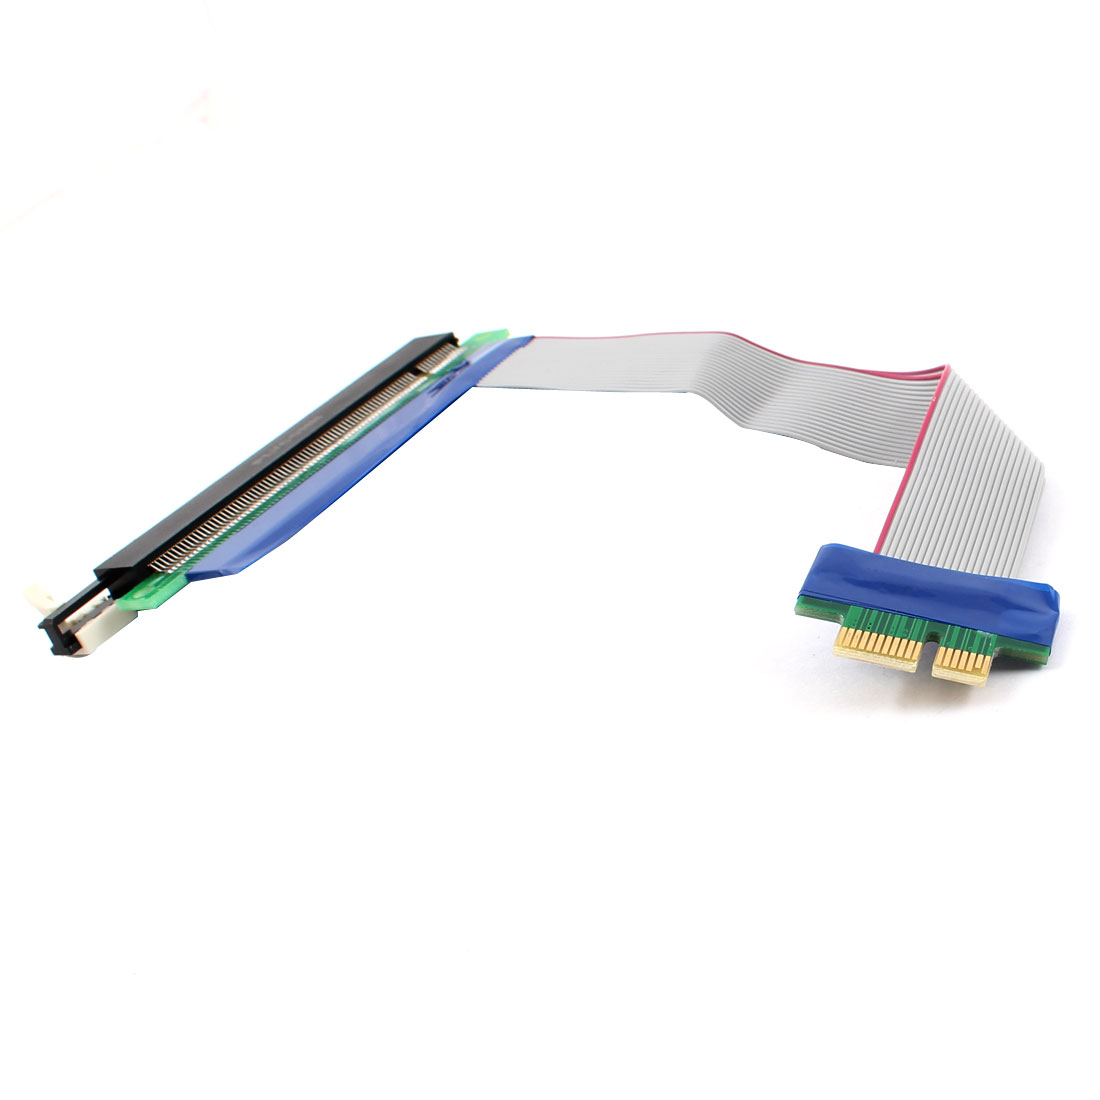 PC PCI-Express PCI-E 16X/1X Riser Card Flex Extension Cable Ribbon